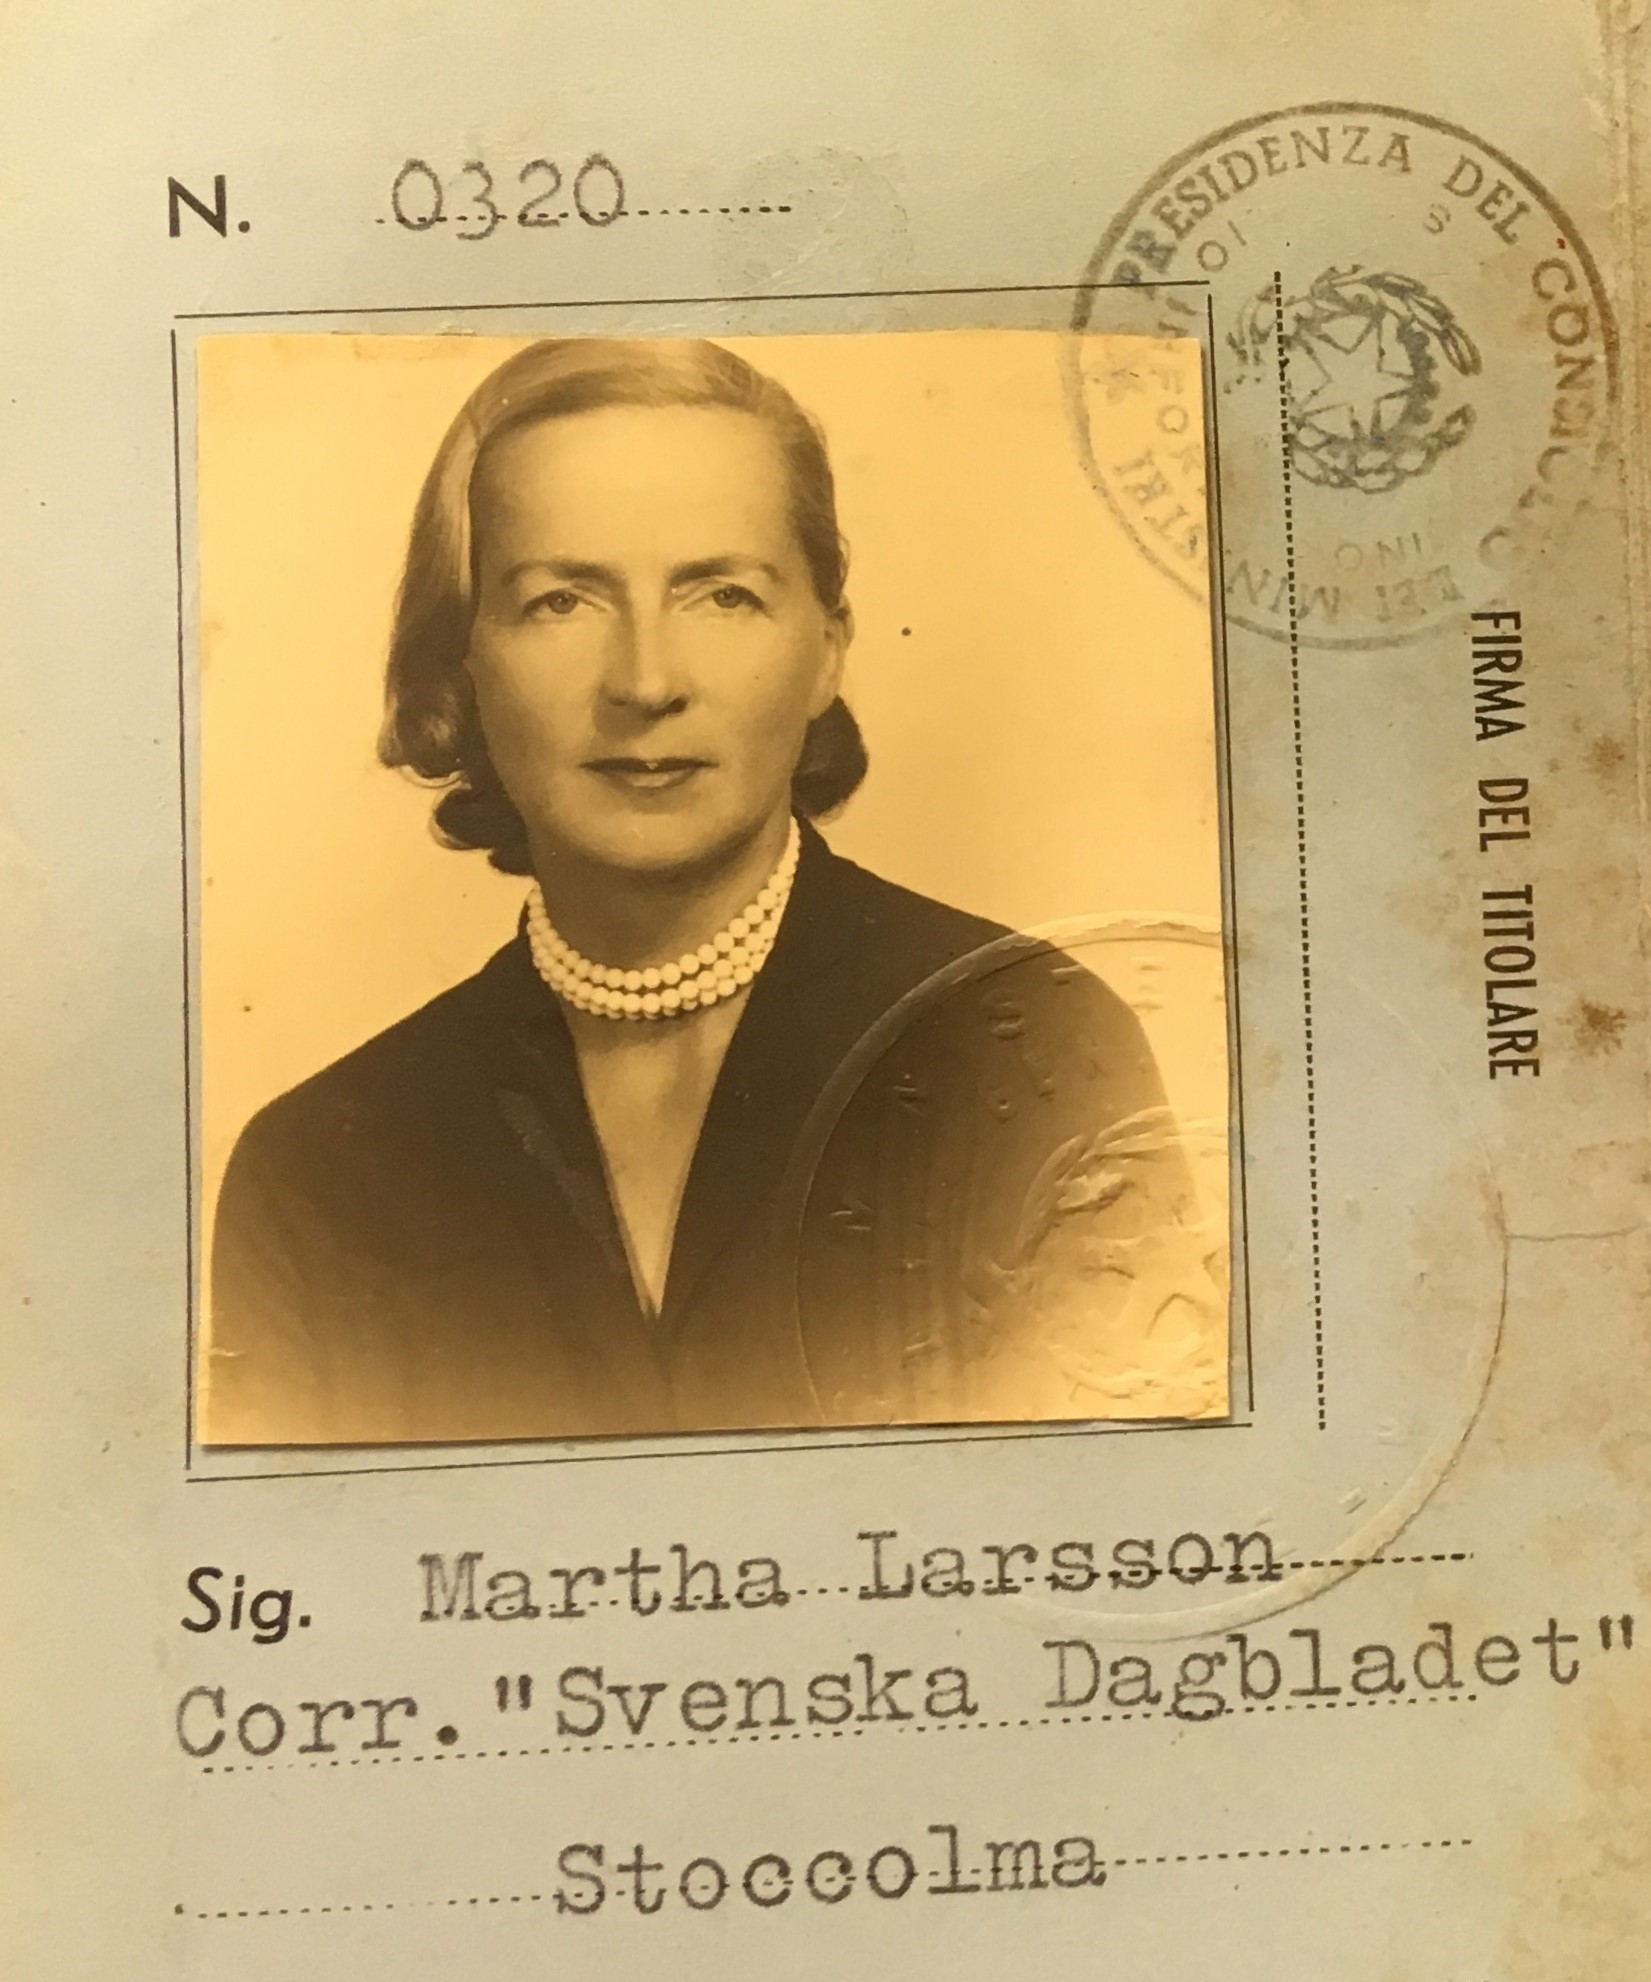 Detail of Martha Larsson's laissez-passier to Italy from 1956. Original stored in Martha Larssons archive at Lund University Libraries. Photo: Cecilia Rosengren